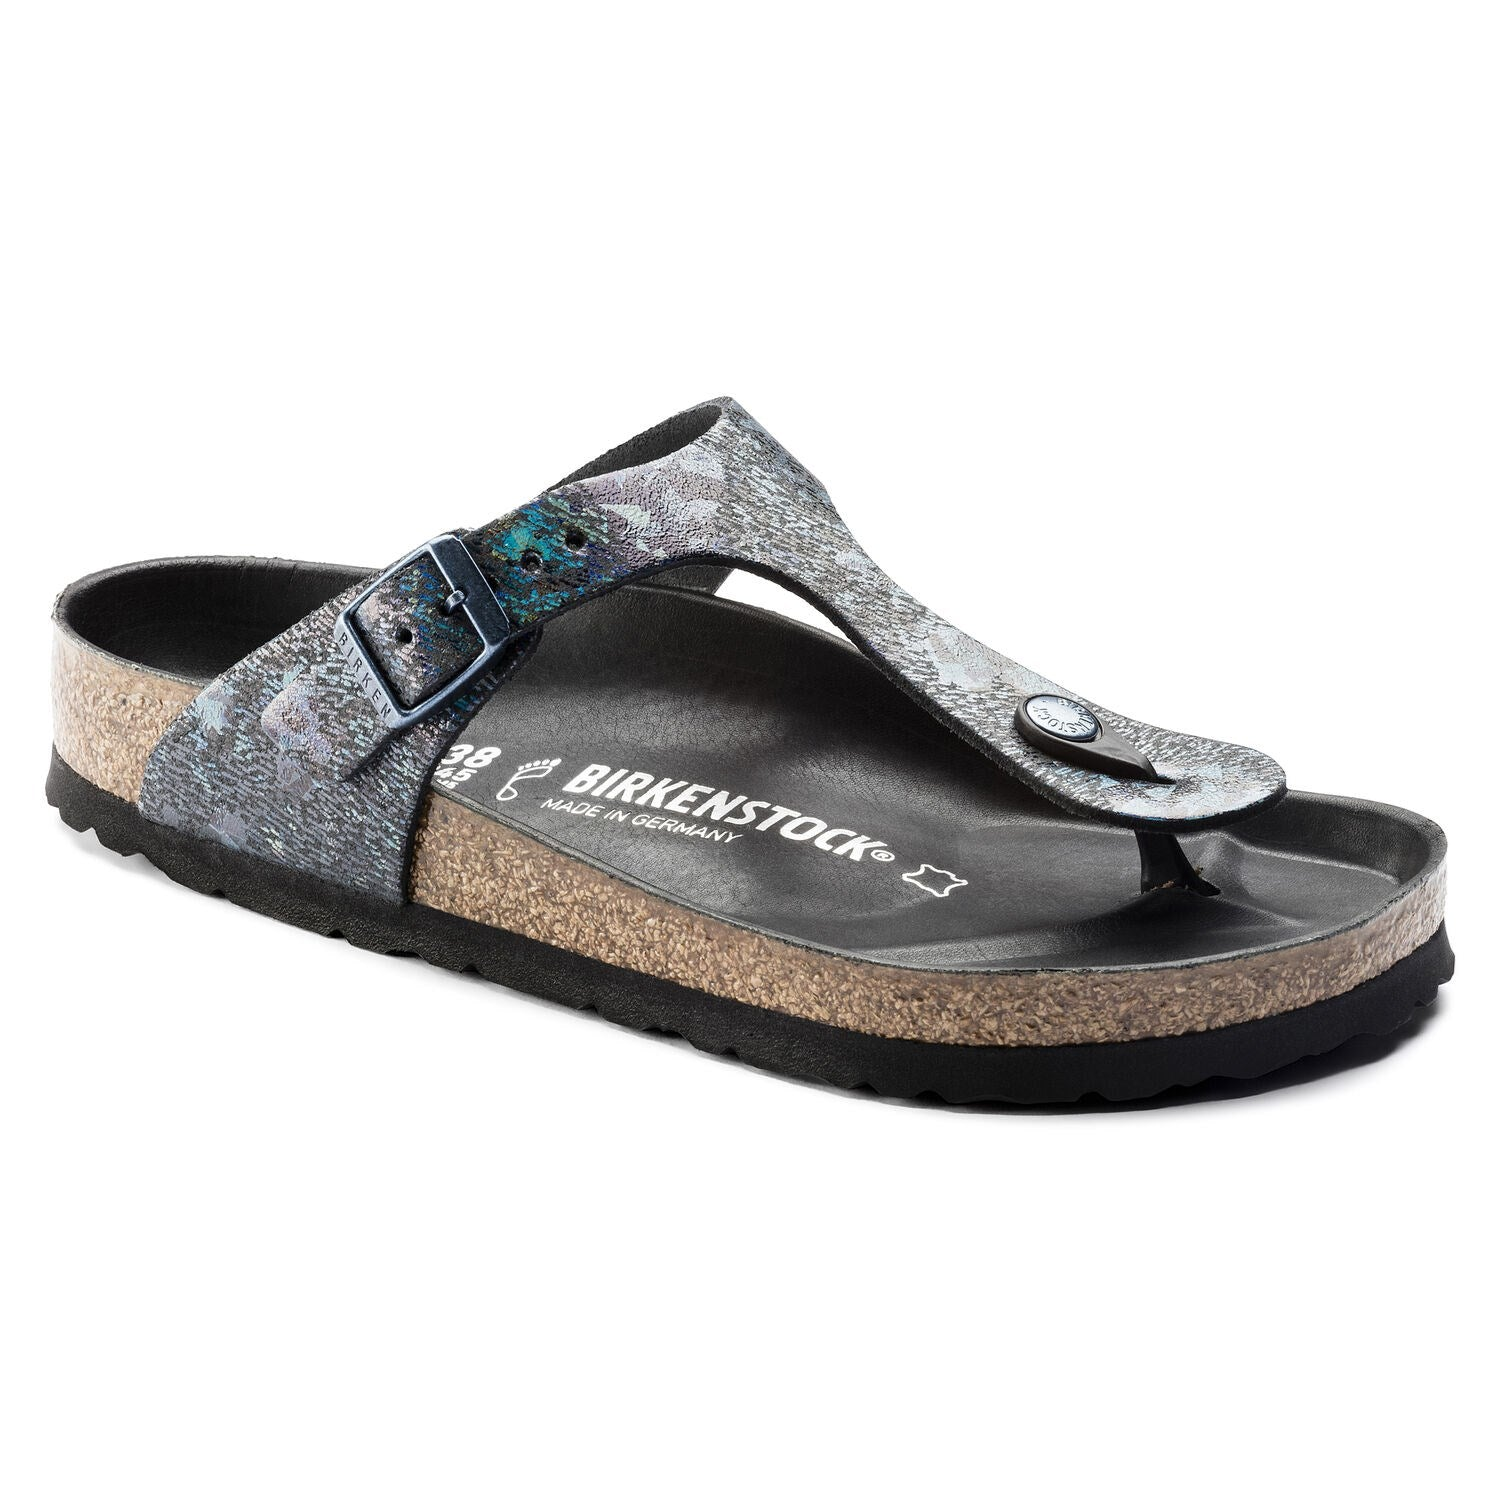 BIRKENSTOCK GIZEH SPOTTED METALLIC BLACK NATURAL LEATHER REGULAR getset-footwear.myshopify.com